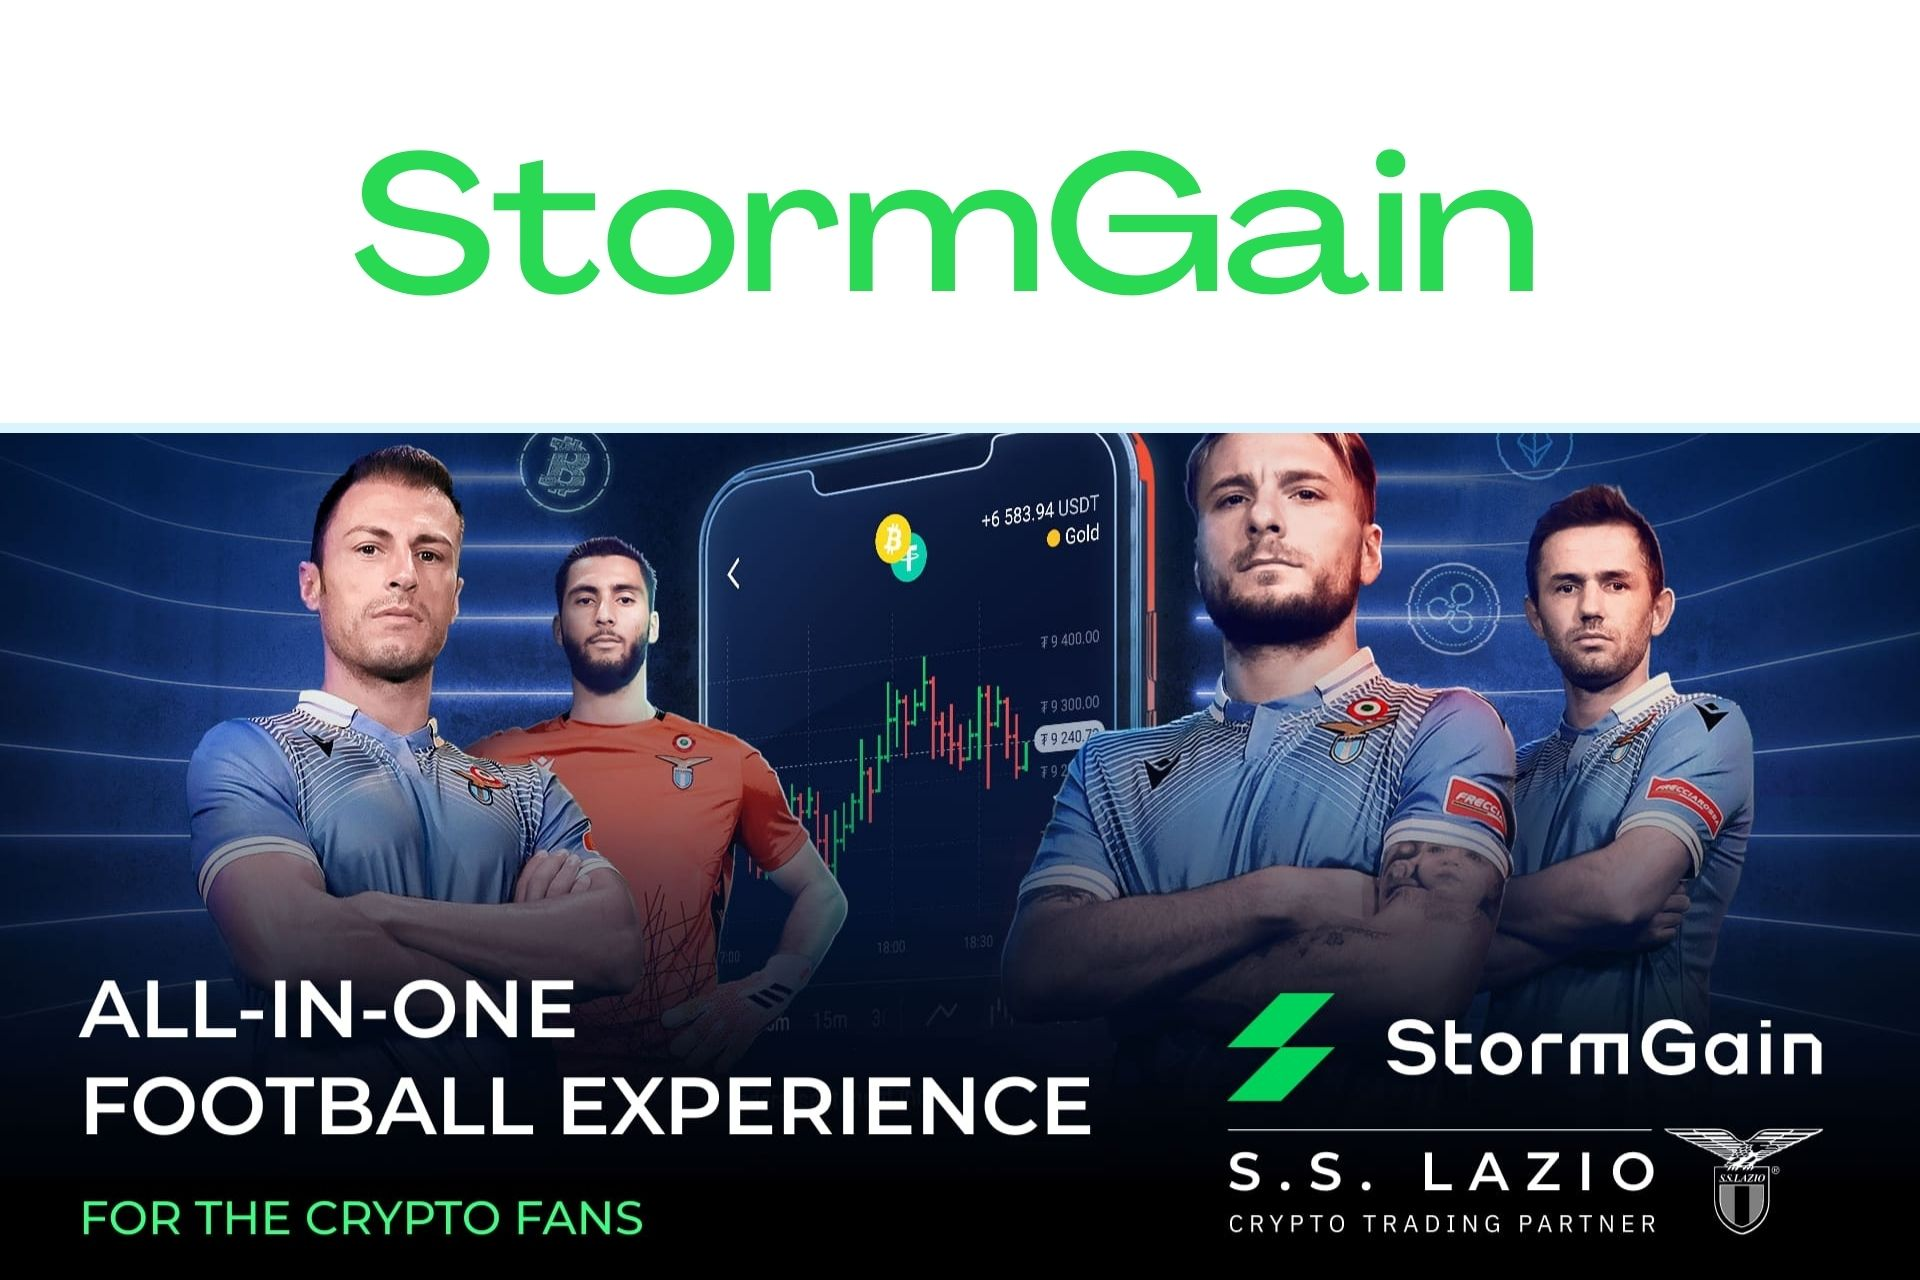 StormGain Signs Long-Term Partnership with Serie A's SS Lazio